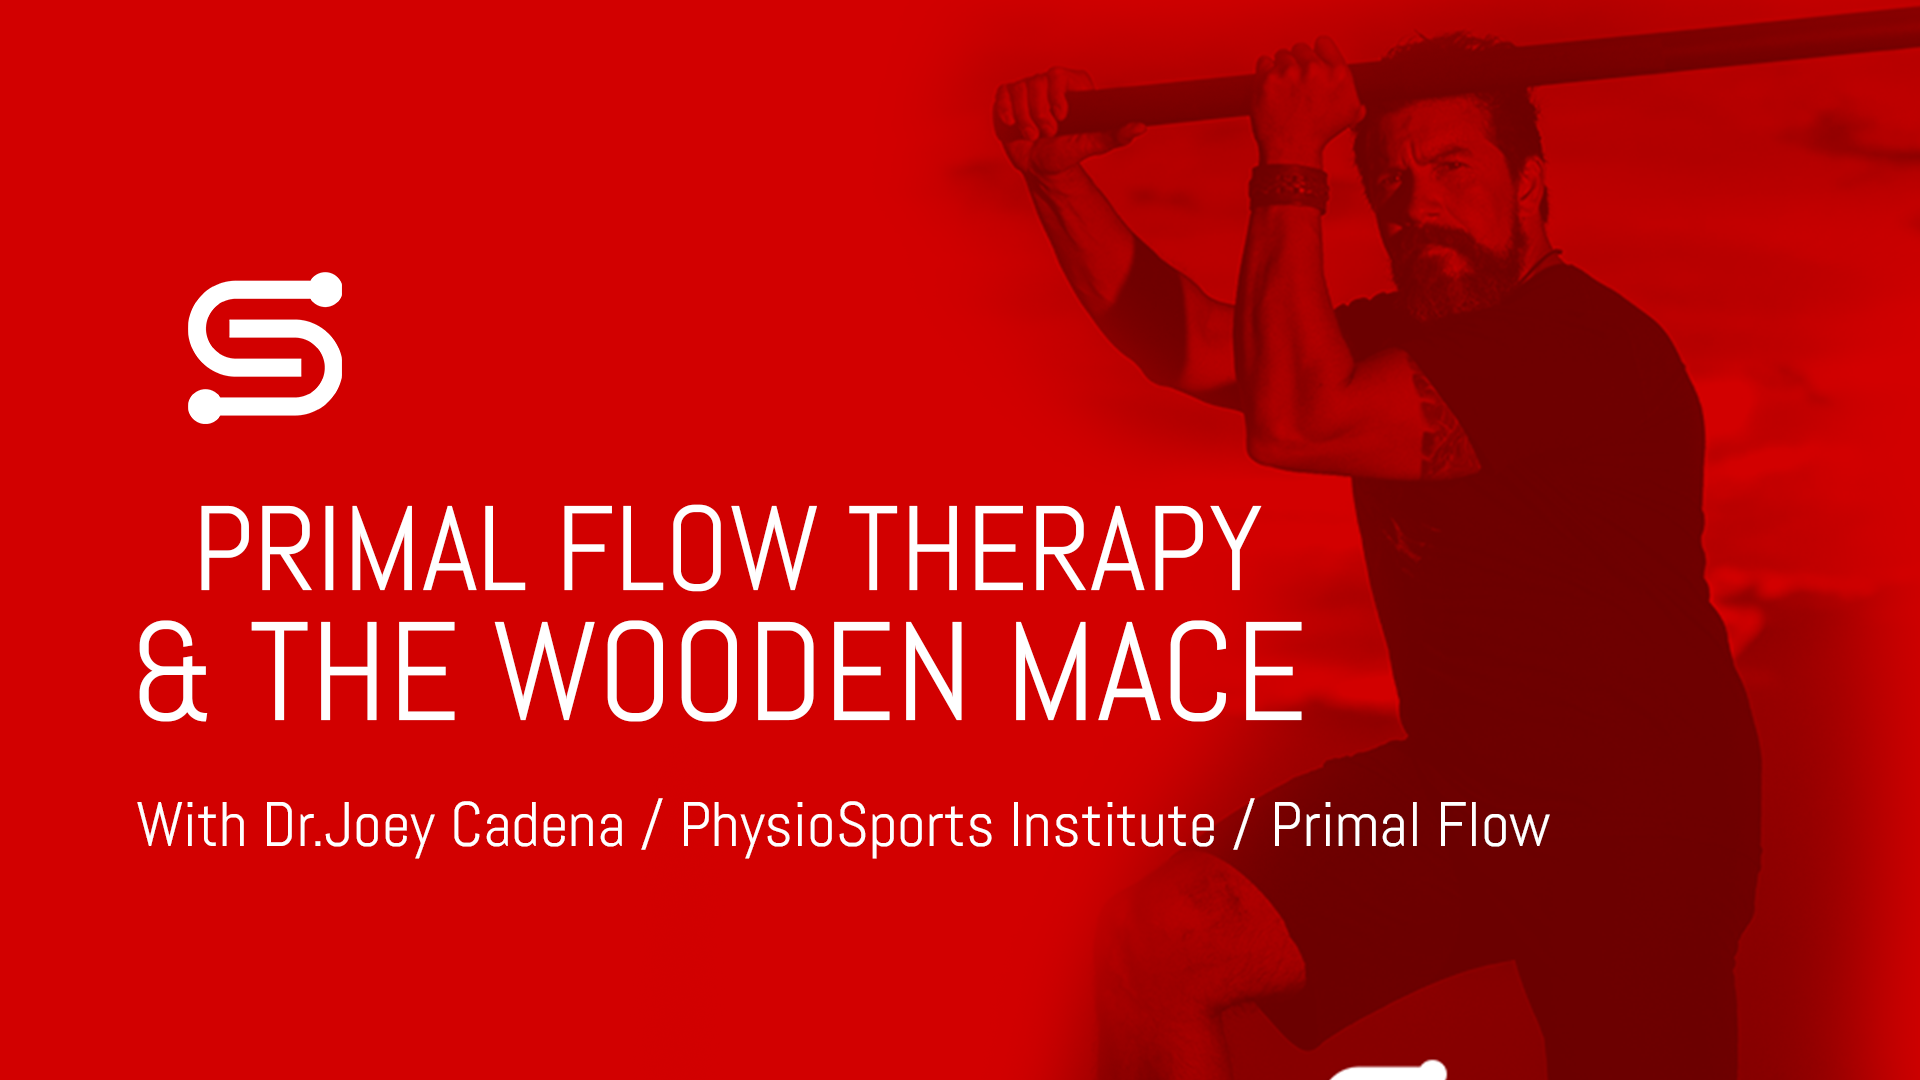 Primal Flow Therapy and the Wooden Mace with Dr. Joey Cadena